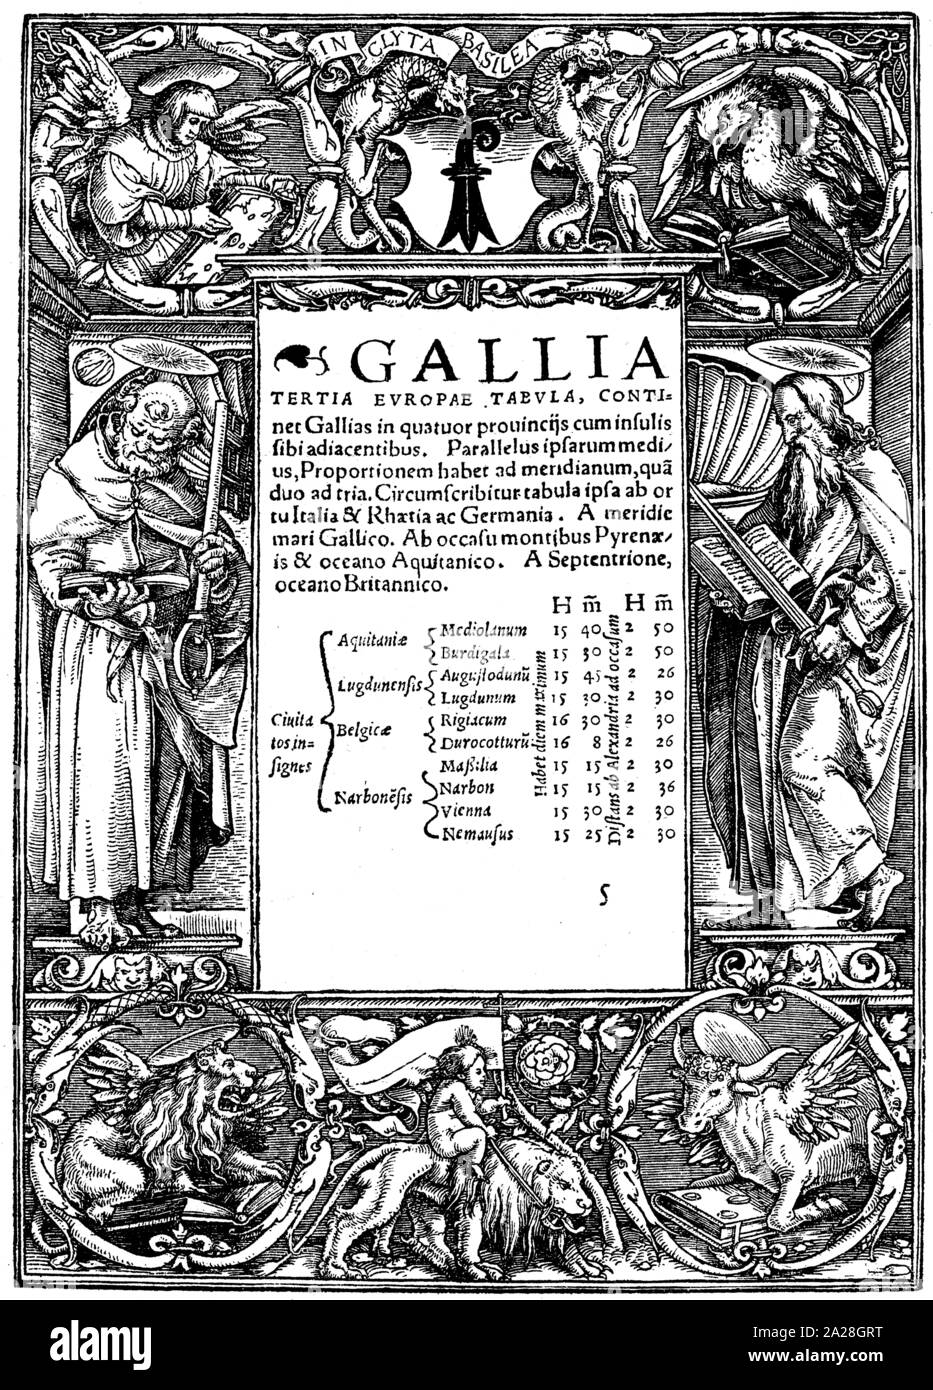 Title book border by Hans Holbein in woodcut, printed from Adam Petris, Offizin from Basel (1524). Religion, Evangelists, Paul, Markus, Luke, John. Stock Photo